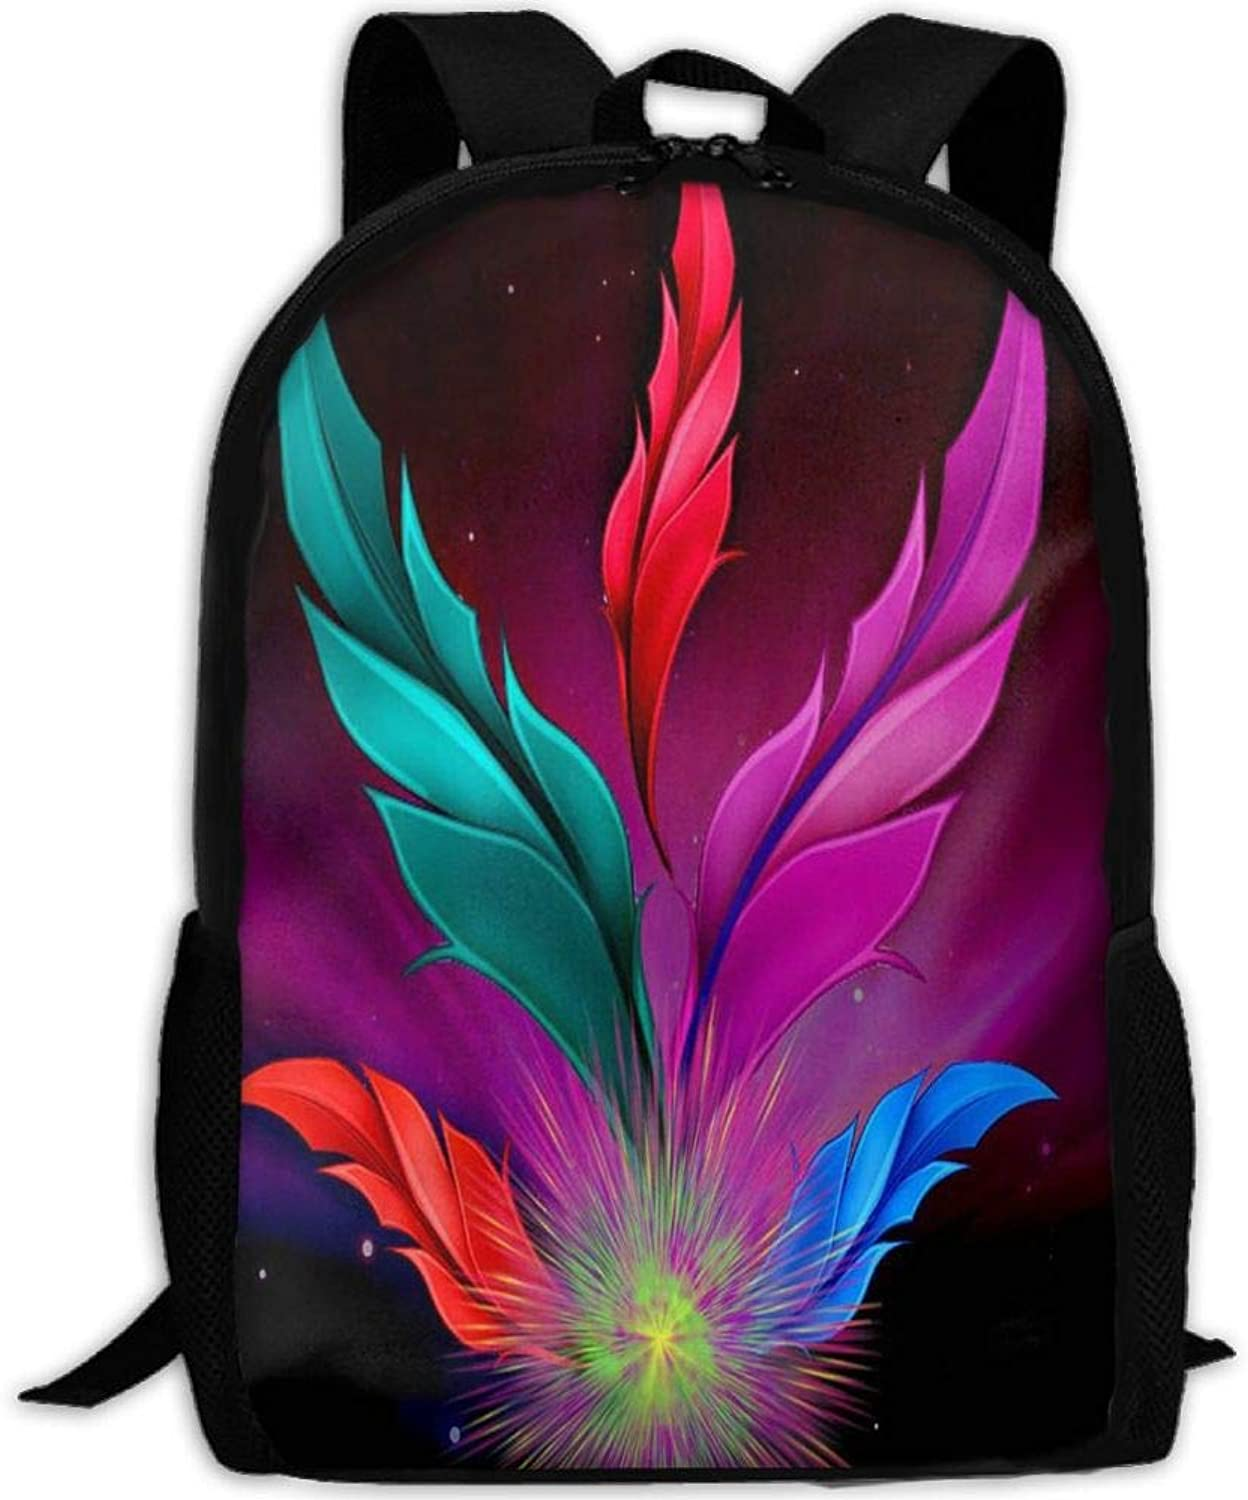 Adult Backpack color Feather College Daypack Oxford Bag Unisex Business Travel Sports Bag with Adjustable Strap